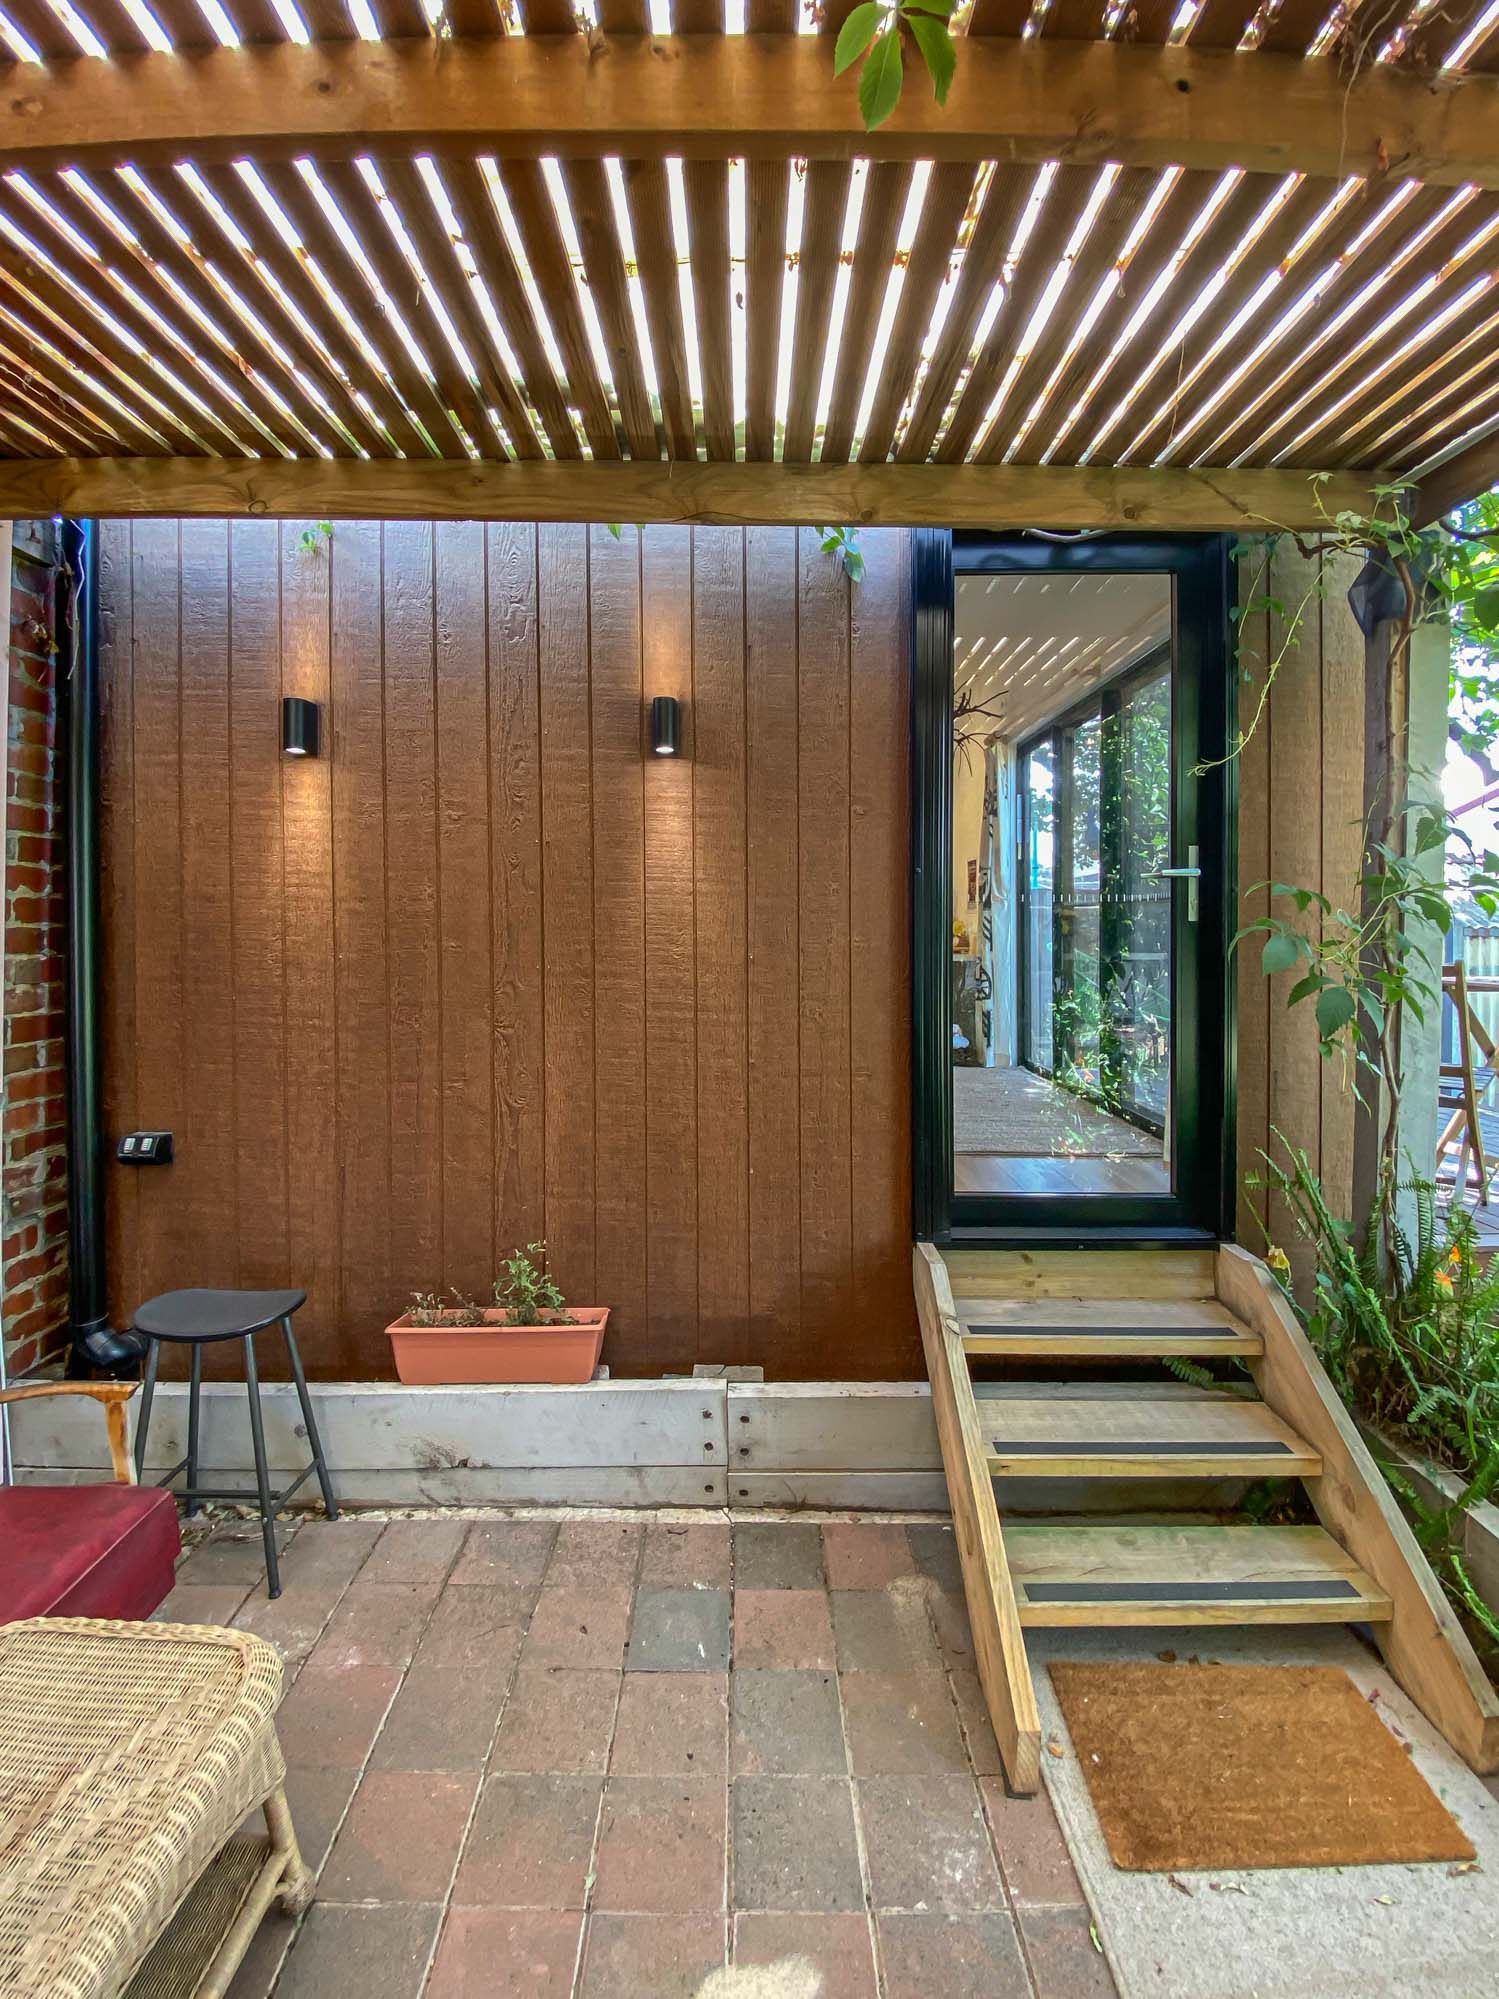 Garden Studio & Home Extension | Garden Studios Melbourne